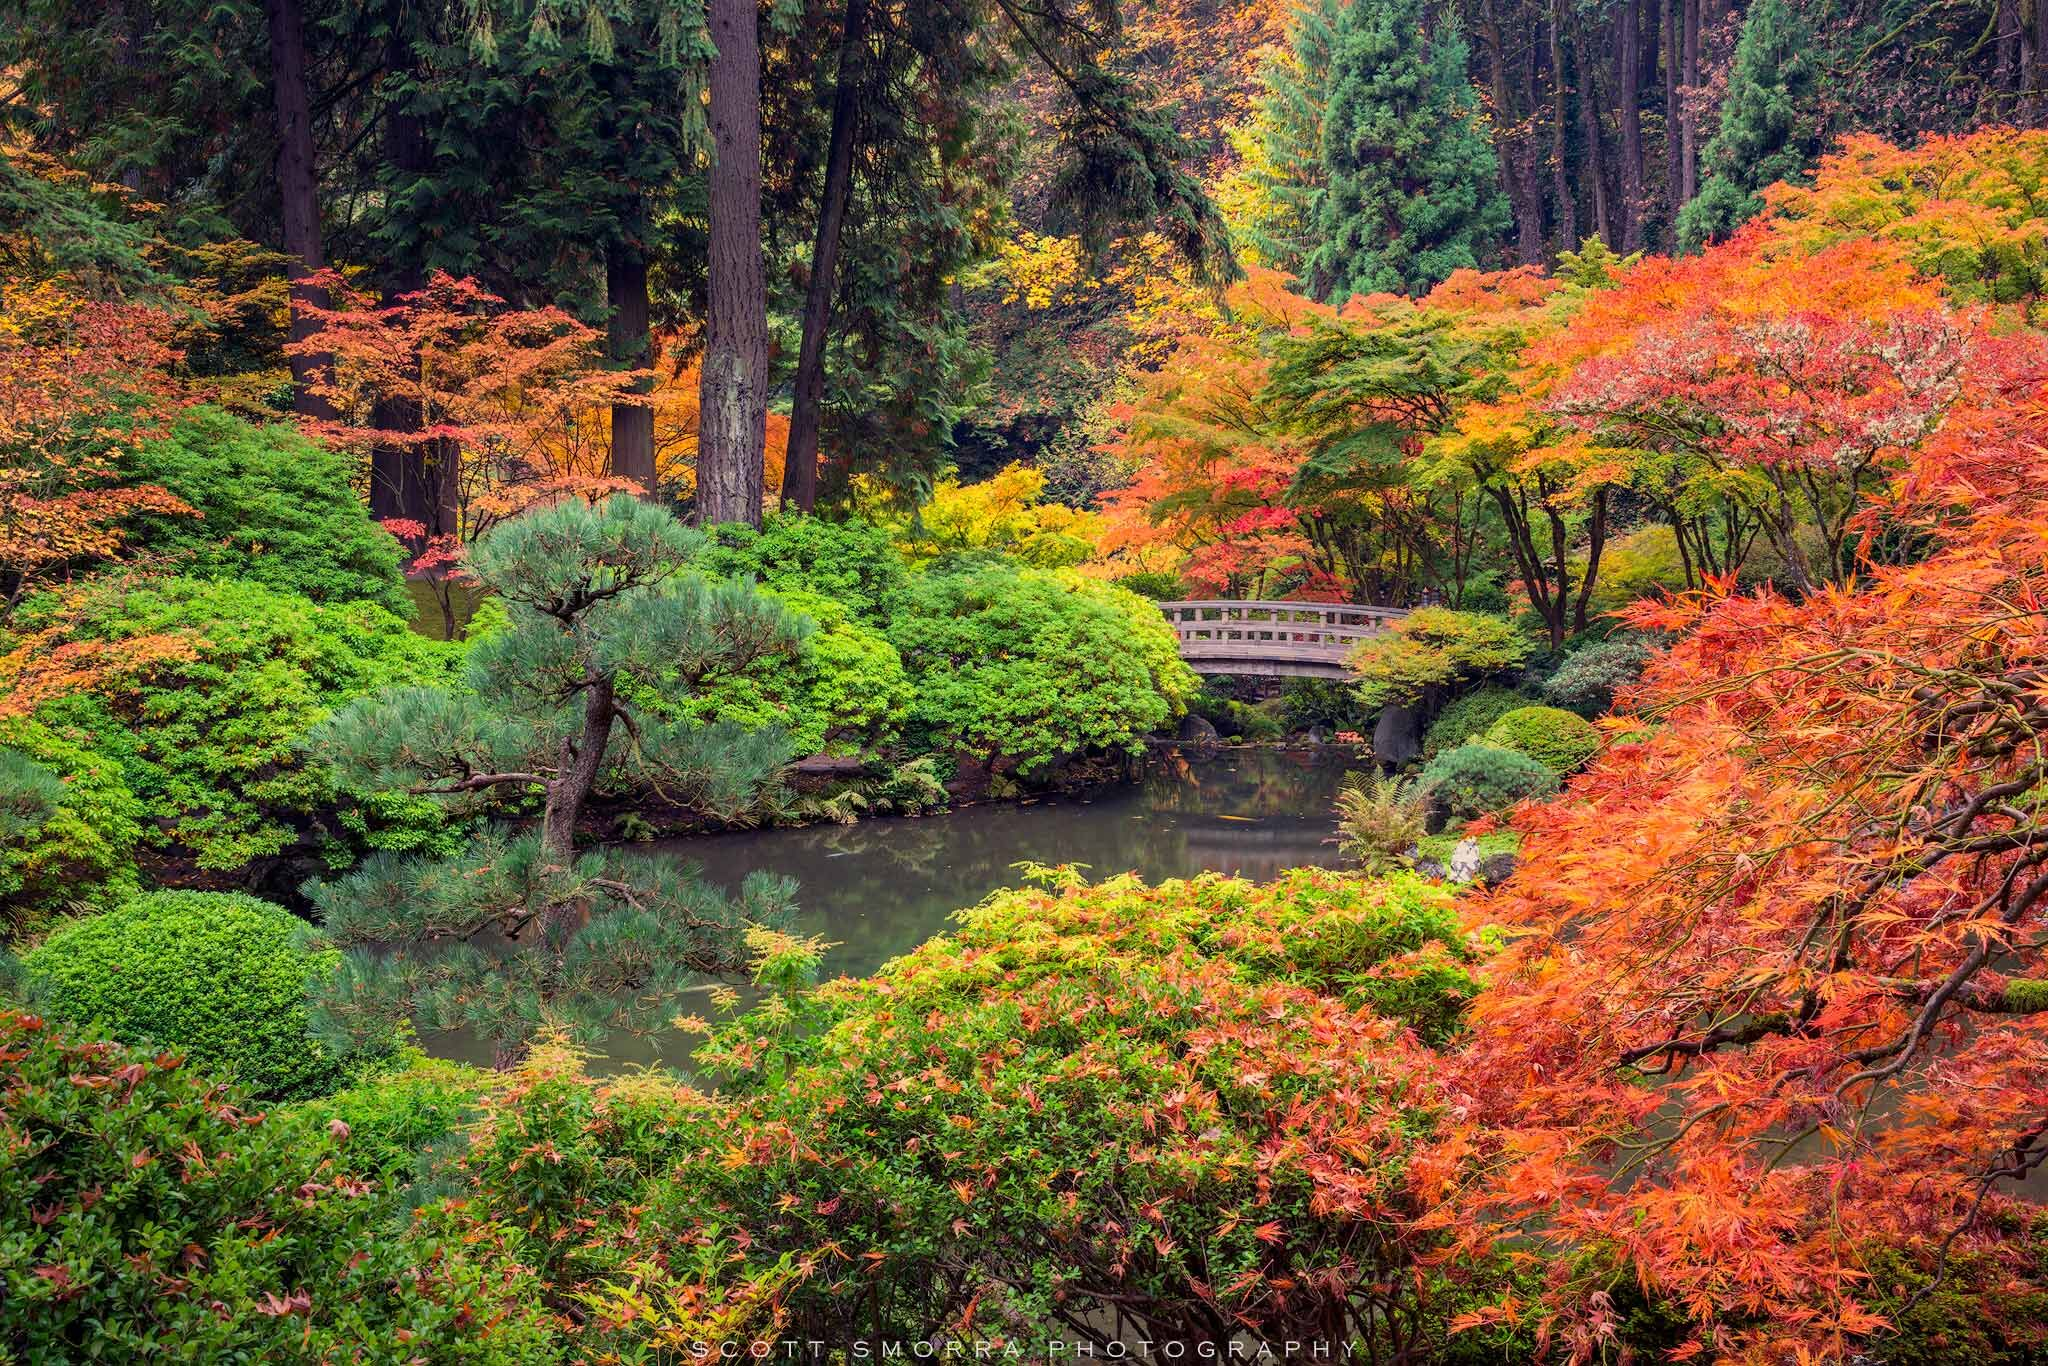 Peak fall colors surround the garden bridge on a quiet and peaceful morning at the Portland Japanese Garden, Portland, Oregon.